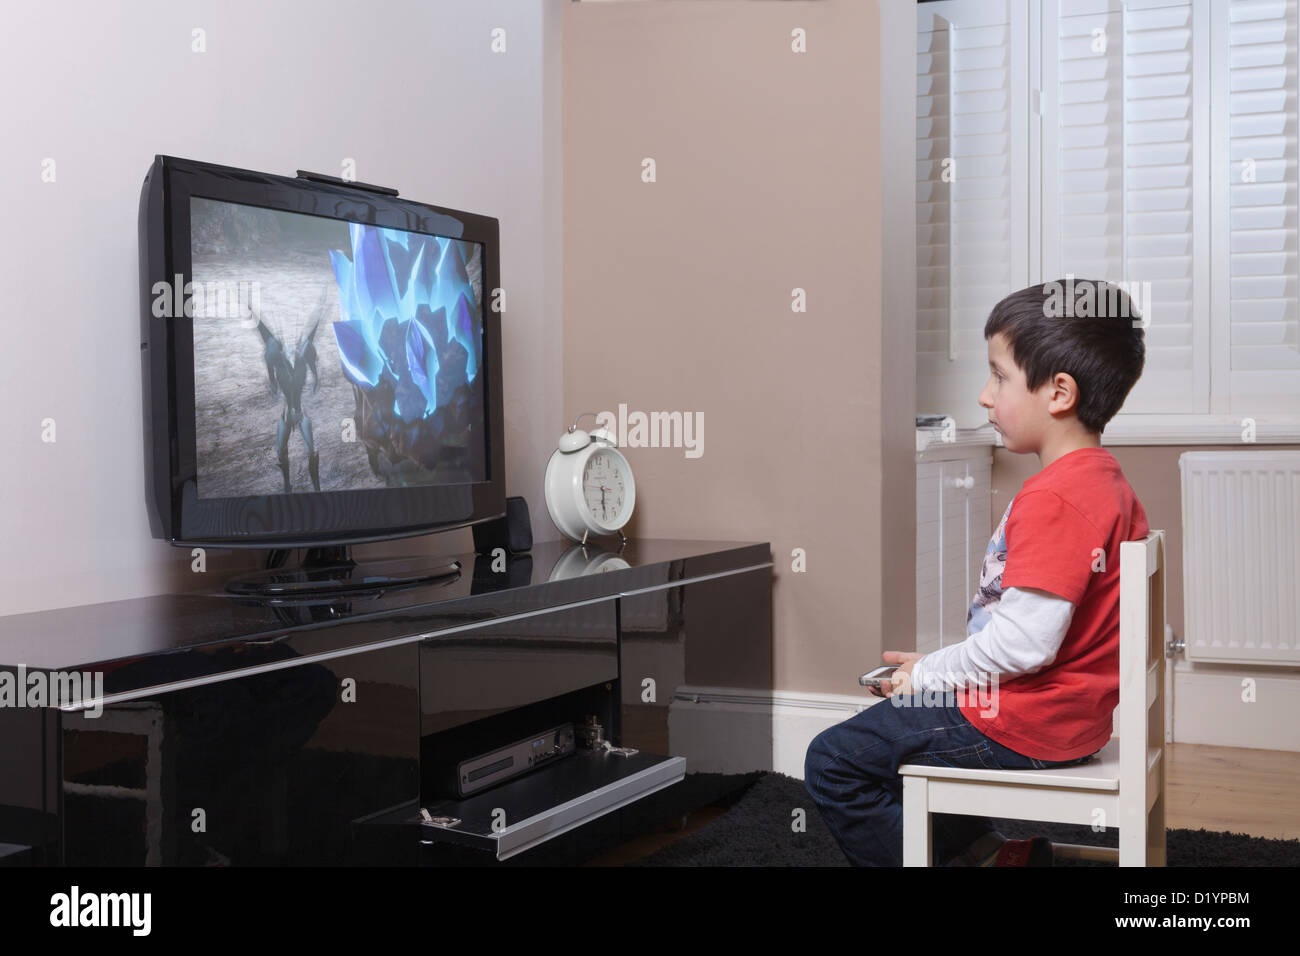 Young boy watches TV alone at home, - Stock Image